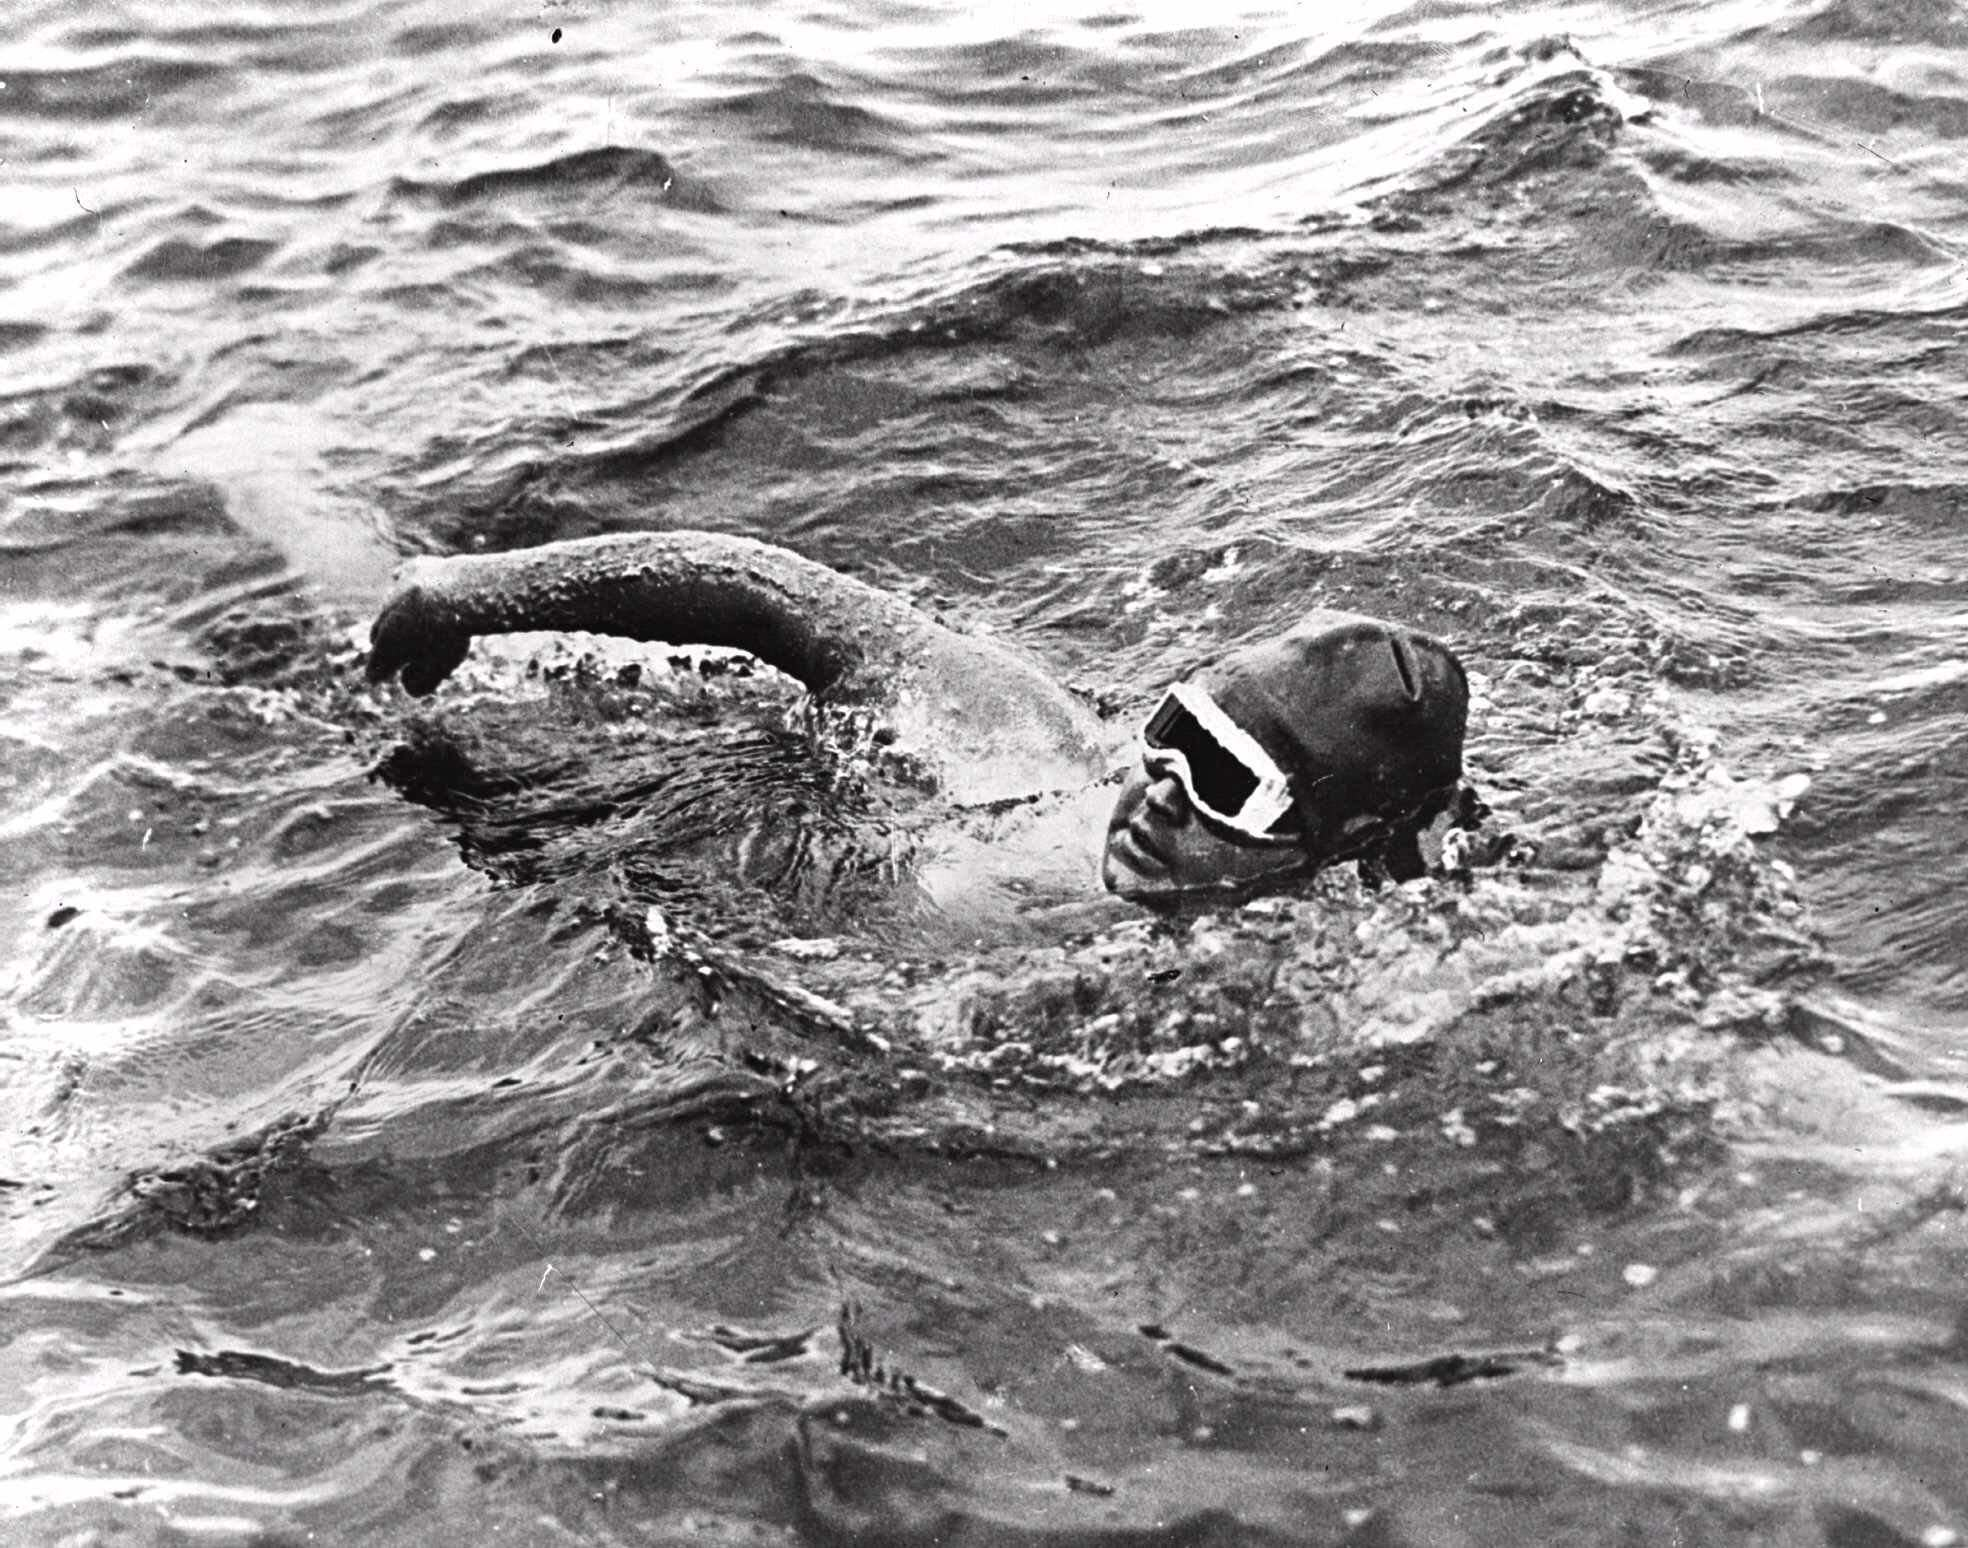 Swimming The English Channel In The 20th Century